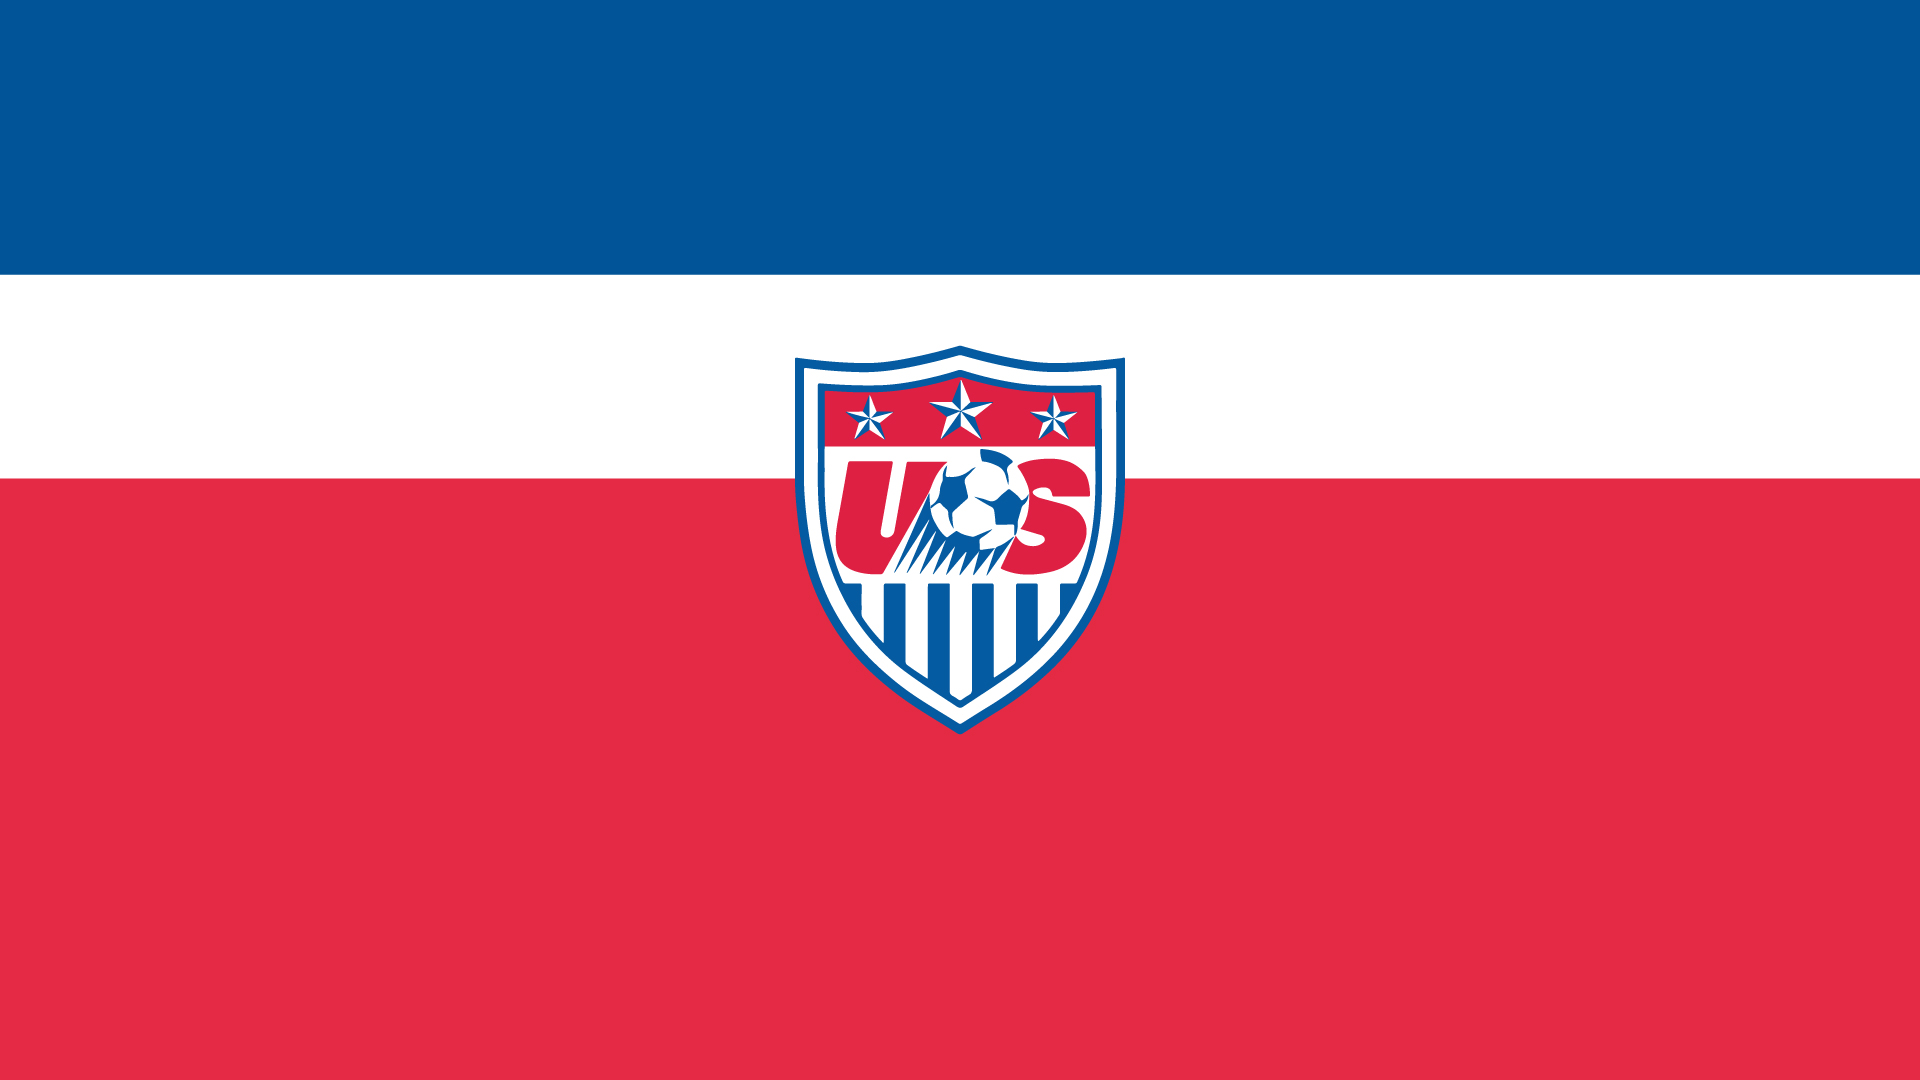 Usa Soccer Logo 2014 HD Wallpaper Background Images 1920x1080